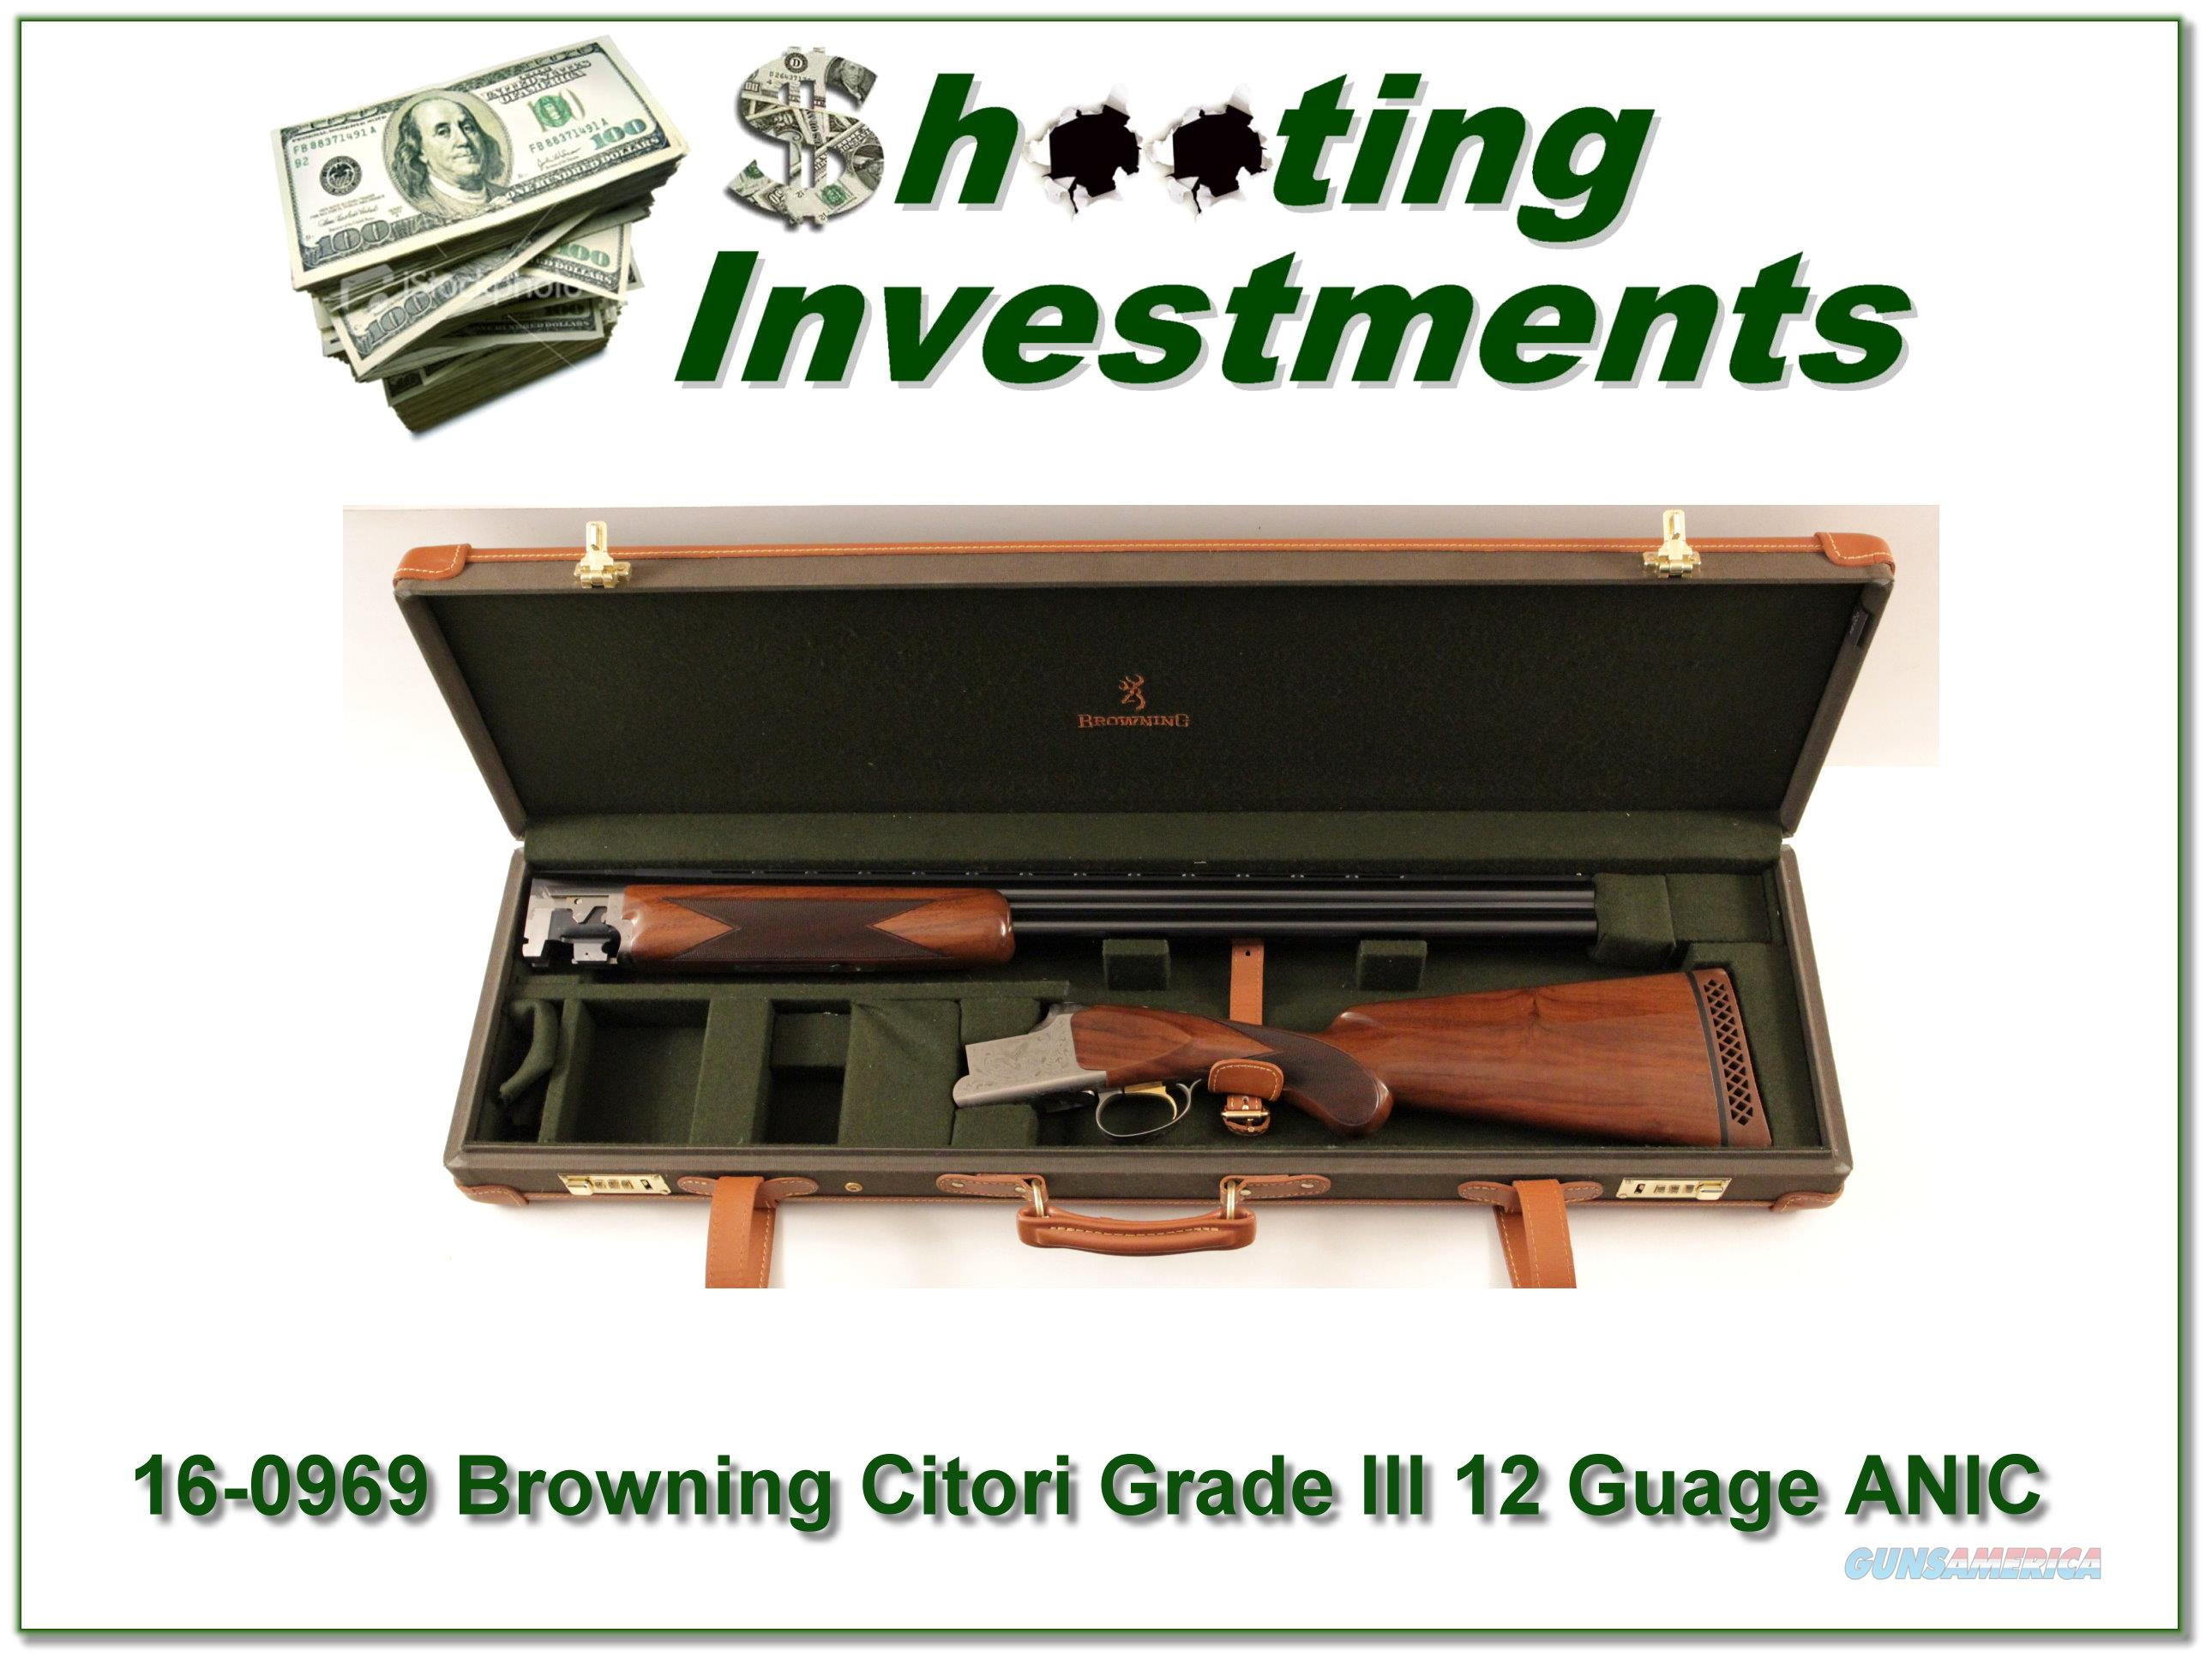 Browning Citori Grade III 12 Gauge ANIC  Guns > Shotguns > Browning Shotguns > Over Unders > Citori > Hunting